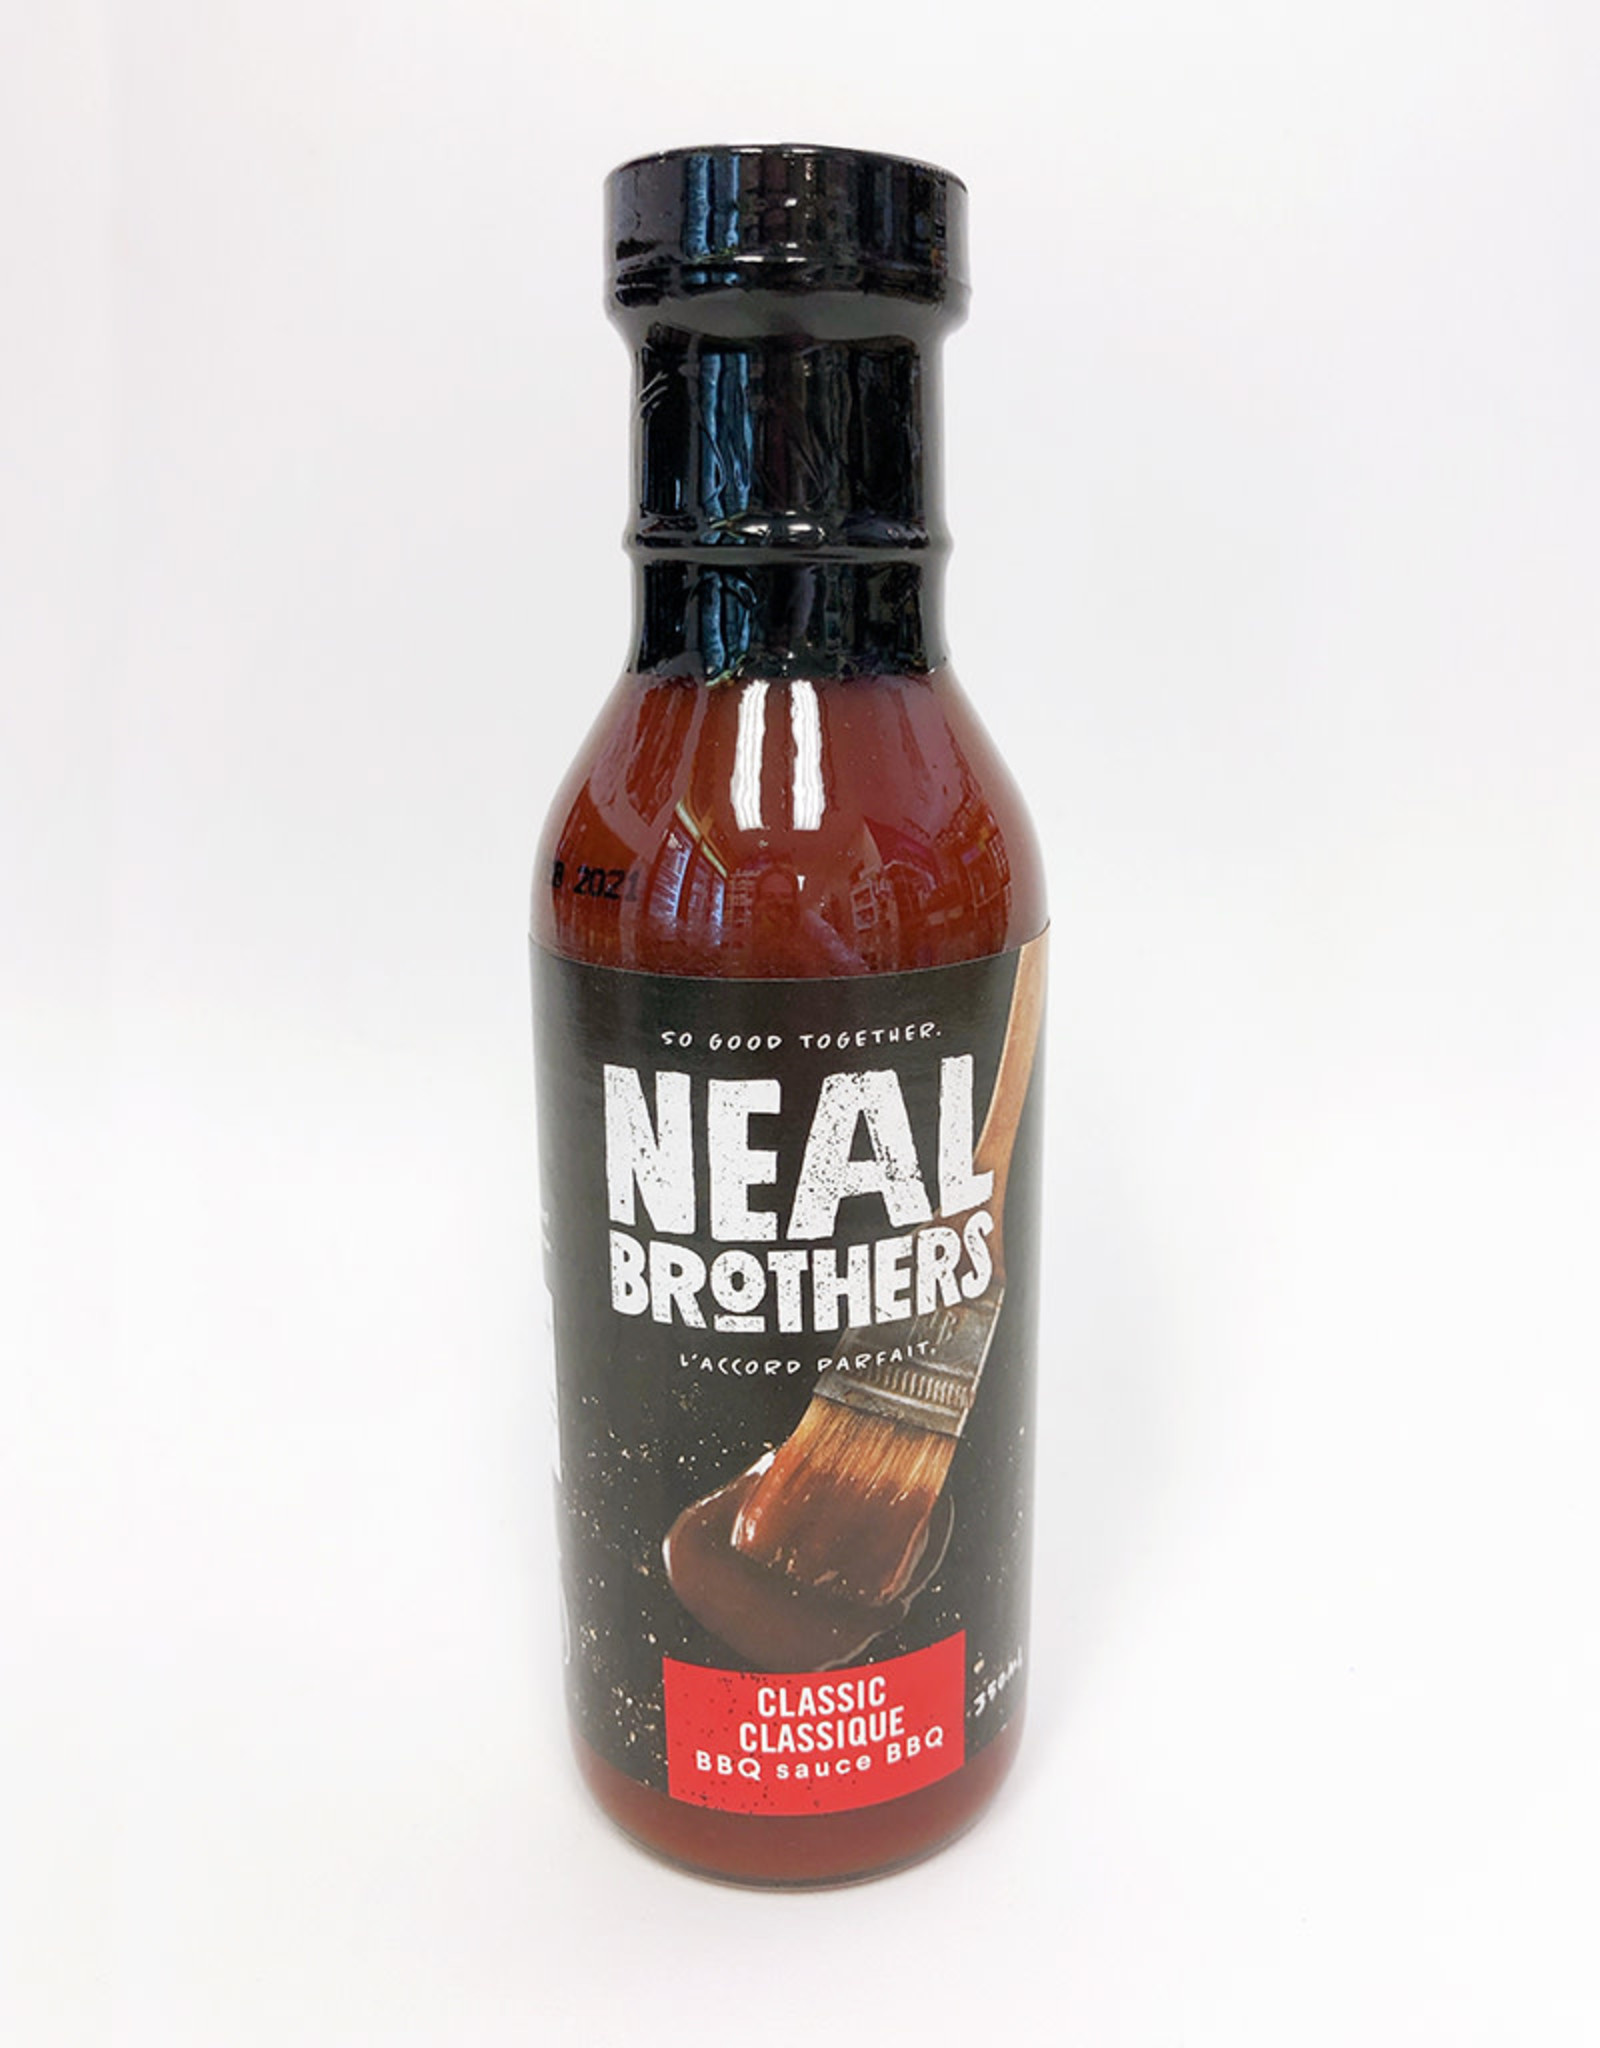 Neal Brothers Neal Brothers - All Natural BBQ Sauce, Classic BBQ